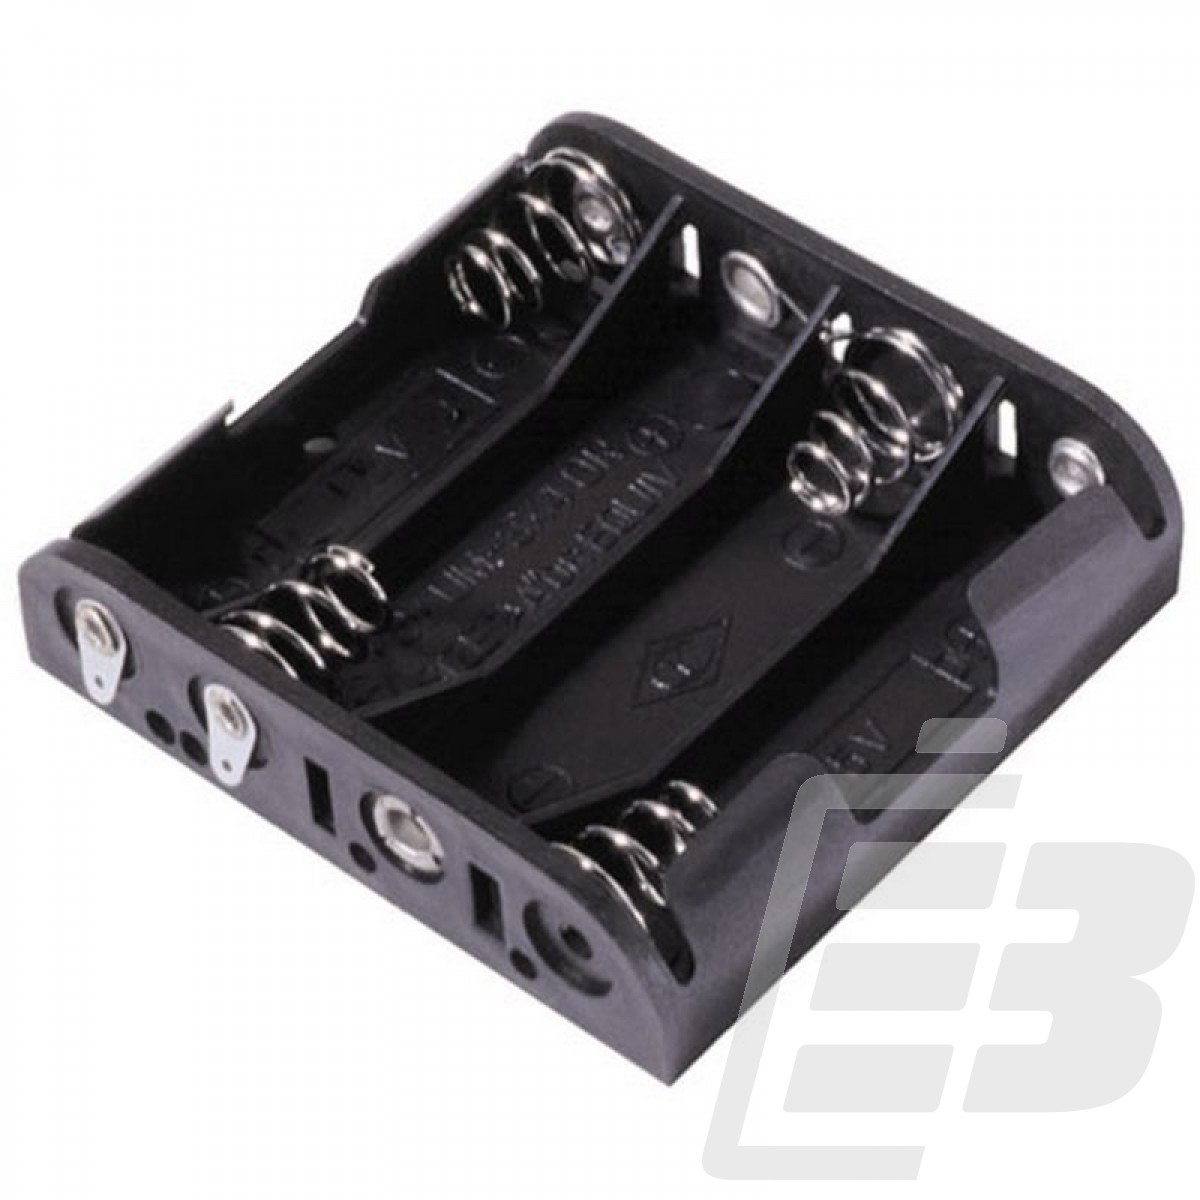 MPD Battery holder AA size 4 cells